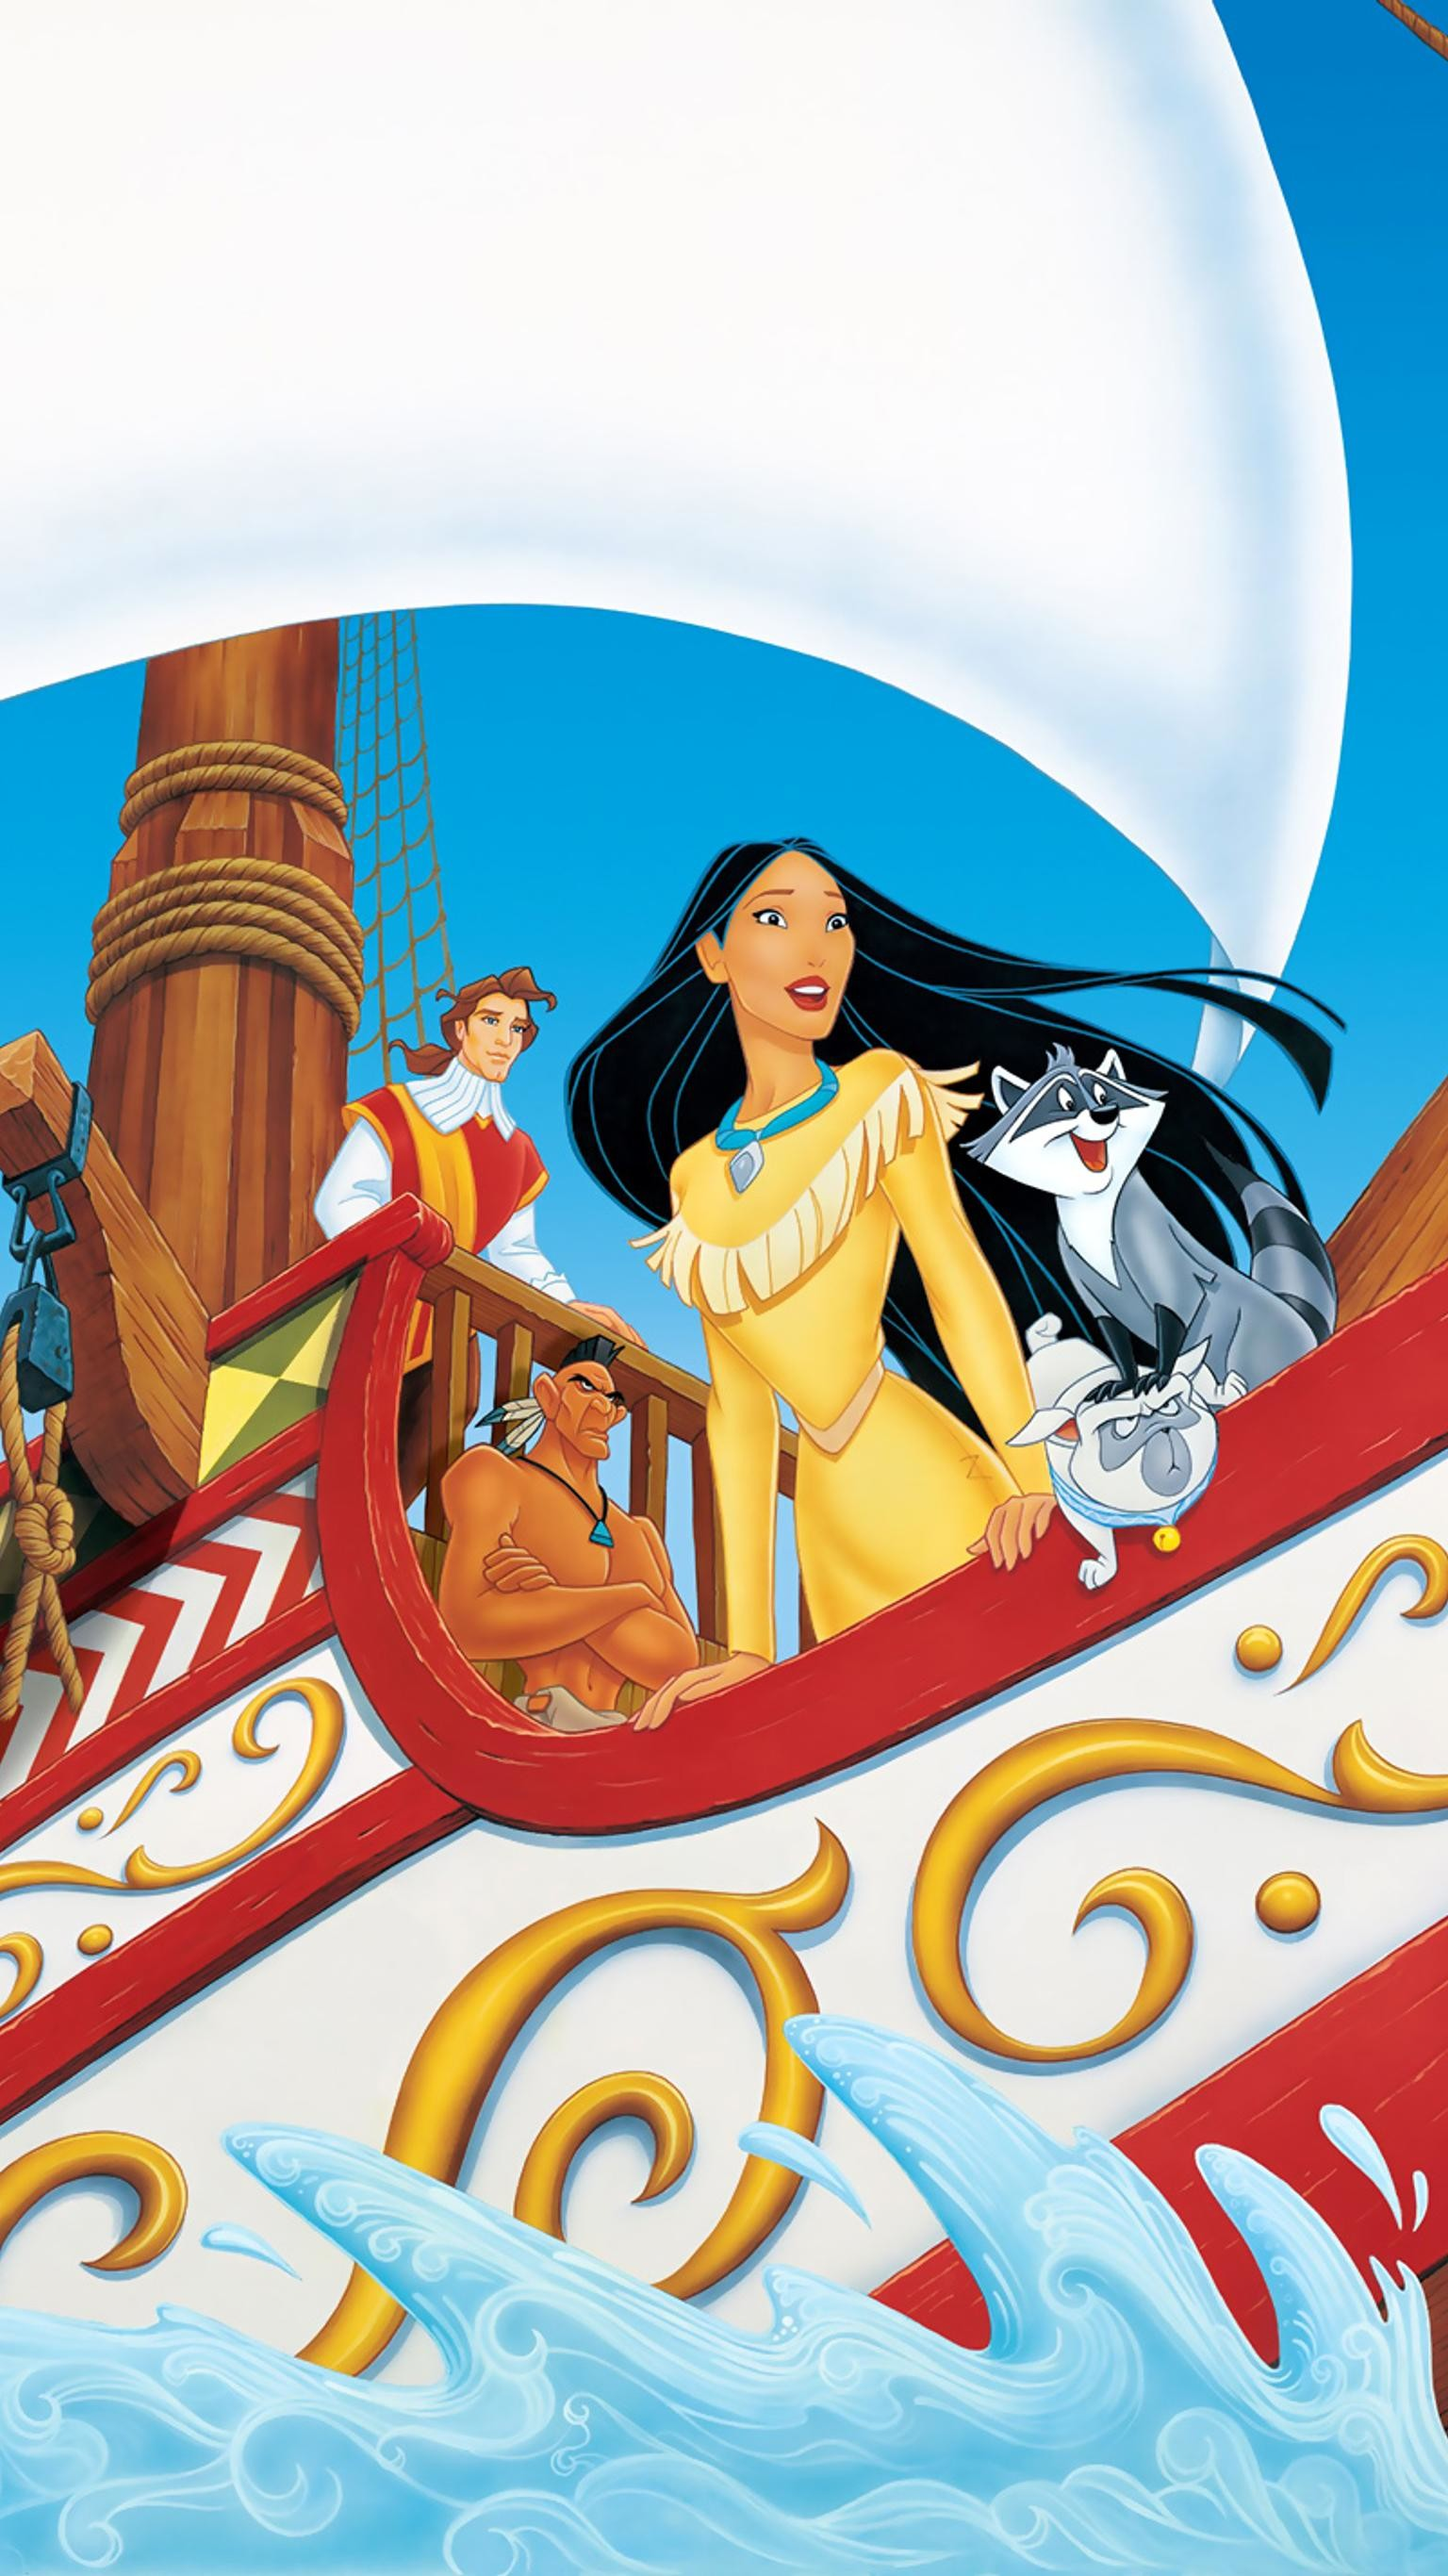 """Res: 1536x2732, Wallpaper for """"Pocahontas II: Journey to a New World"""" ..."""